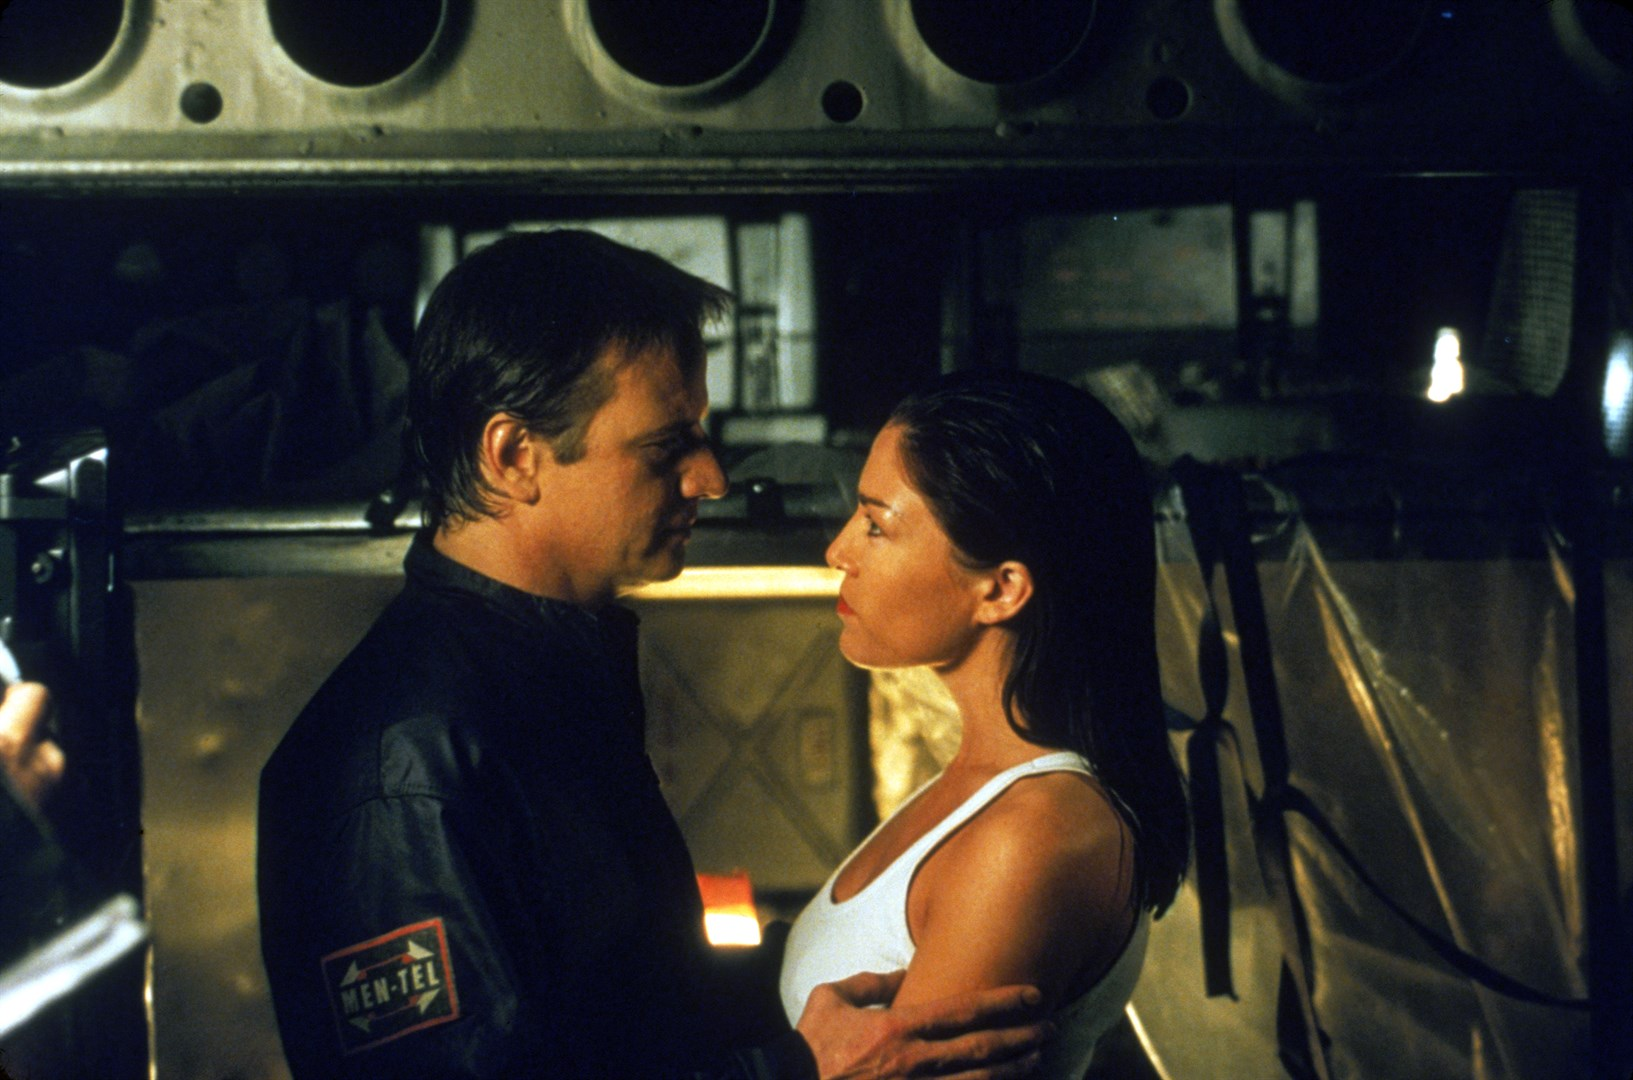 John Brennick (Christopher Lambert) sentenced to prison in orbit along with fellow inmate Liz May Brice in Fortress 2: Re-Entry (2000)